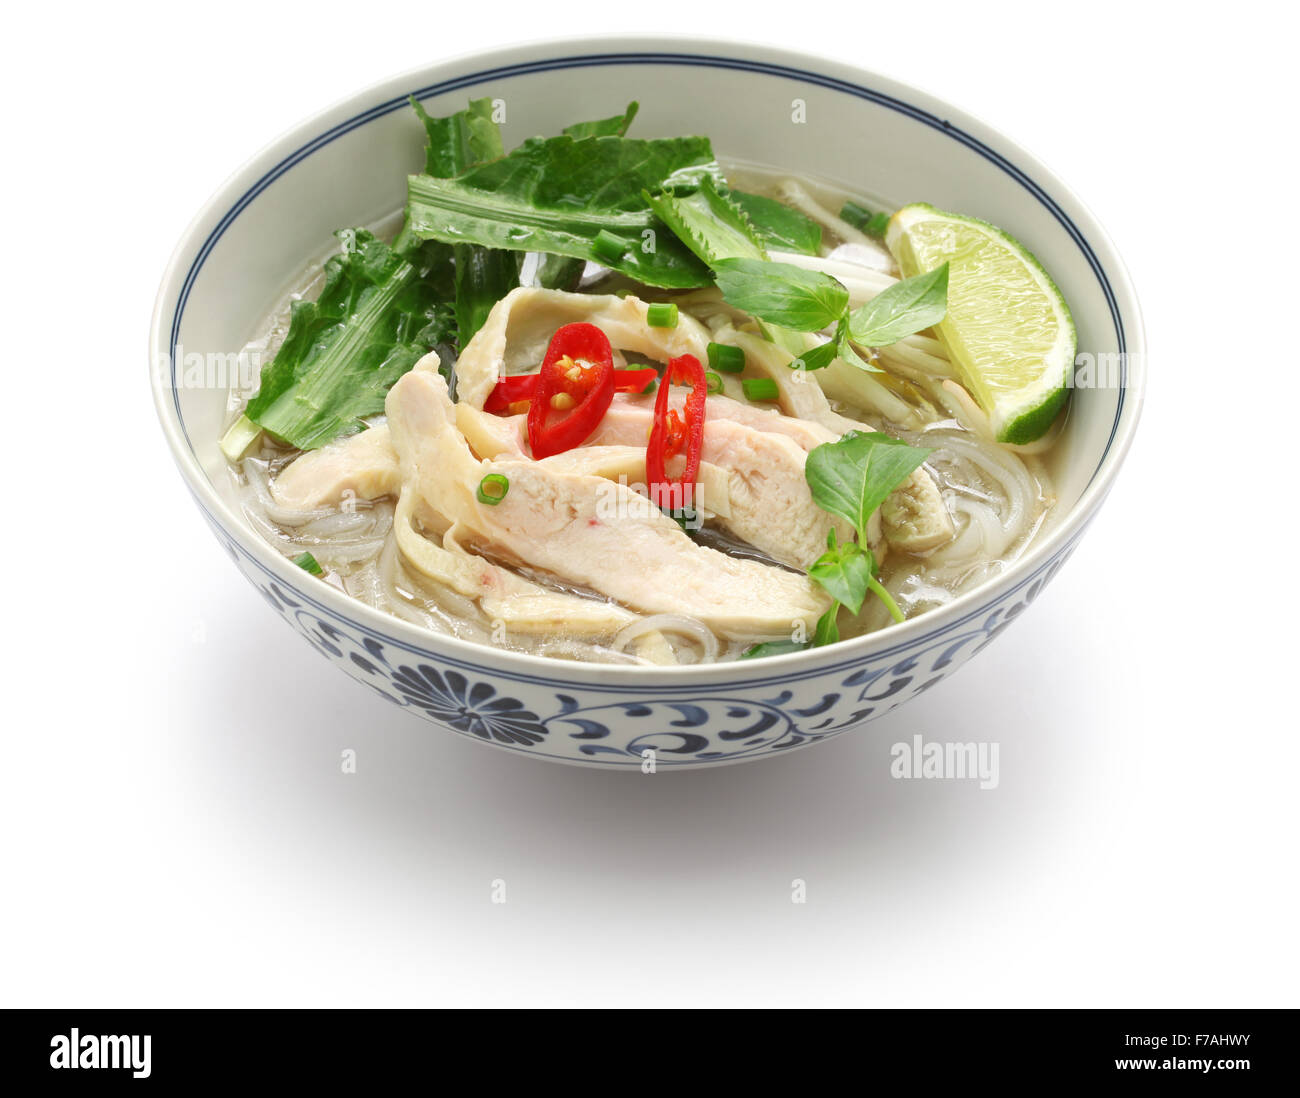 pho ga, vietnamese chicken rice noodle soup isolated on white background - Stock Image